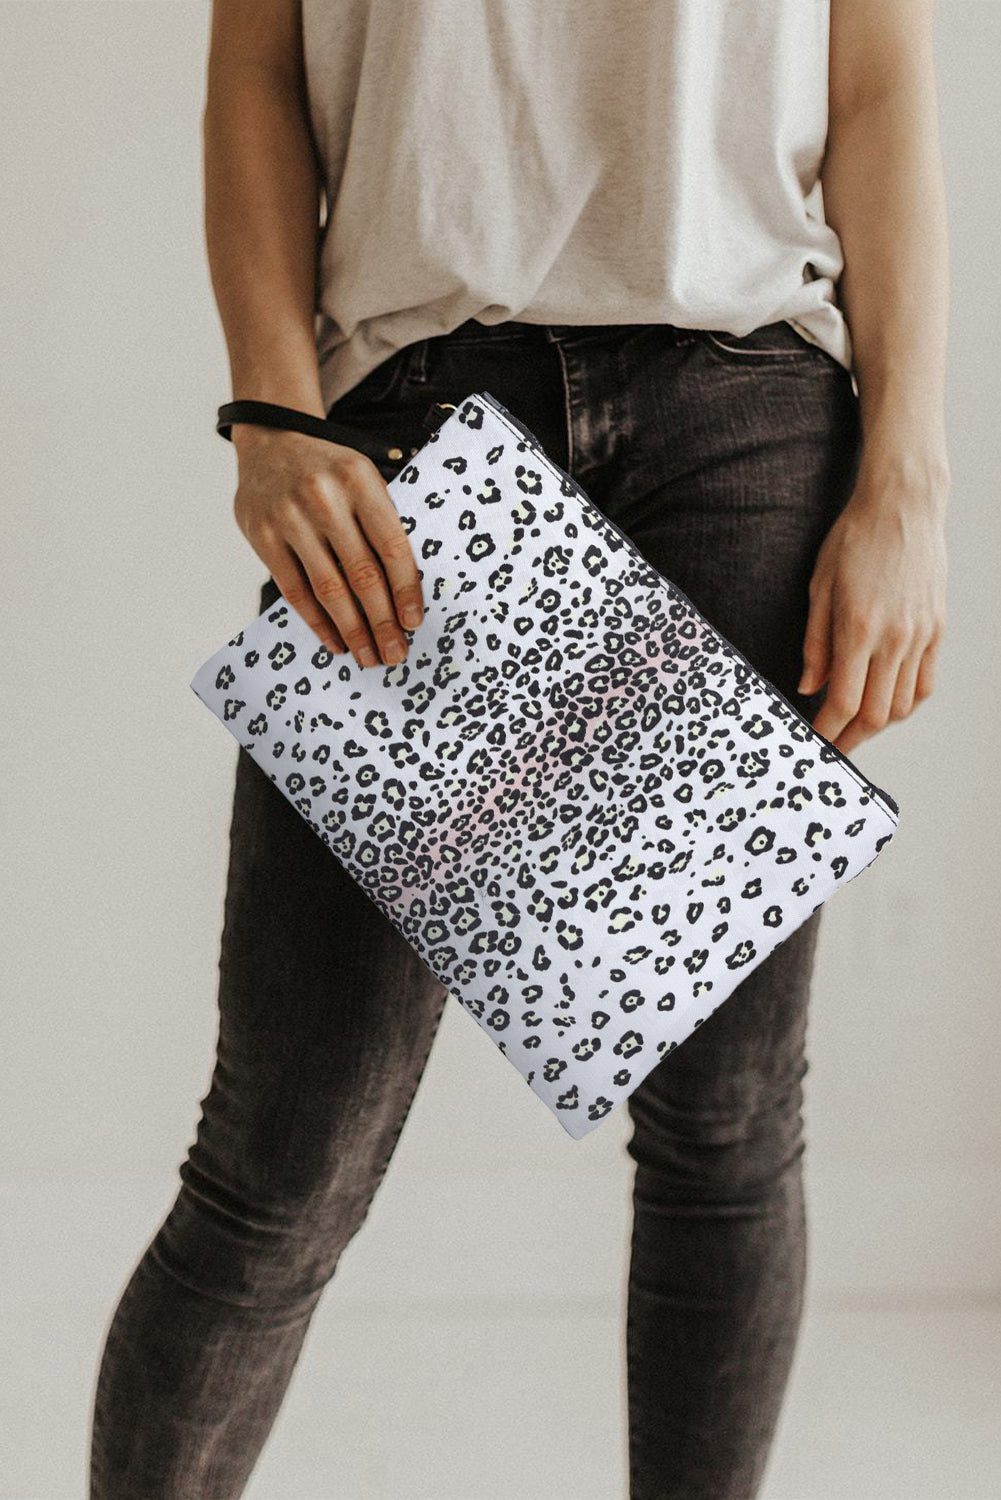 Black Leopard Print Clutch Bags Discount Designer Fashion Clothes Shoes Bags Women Men Kids Children Black Owned Business